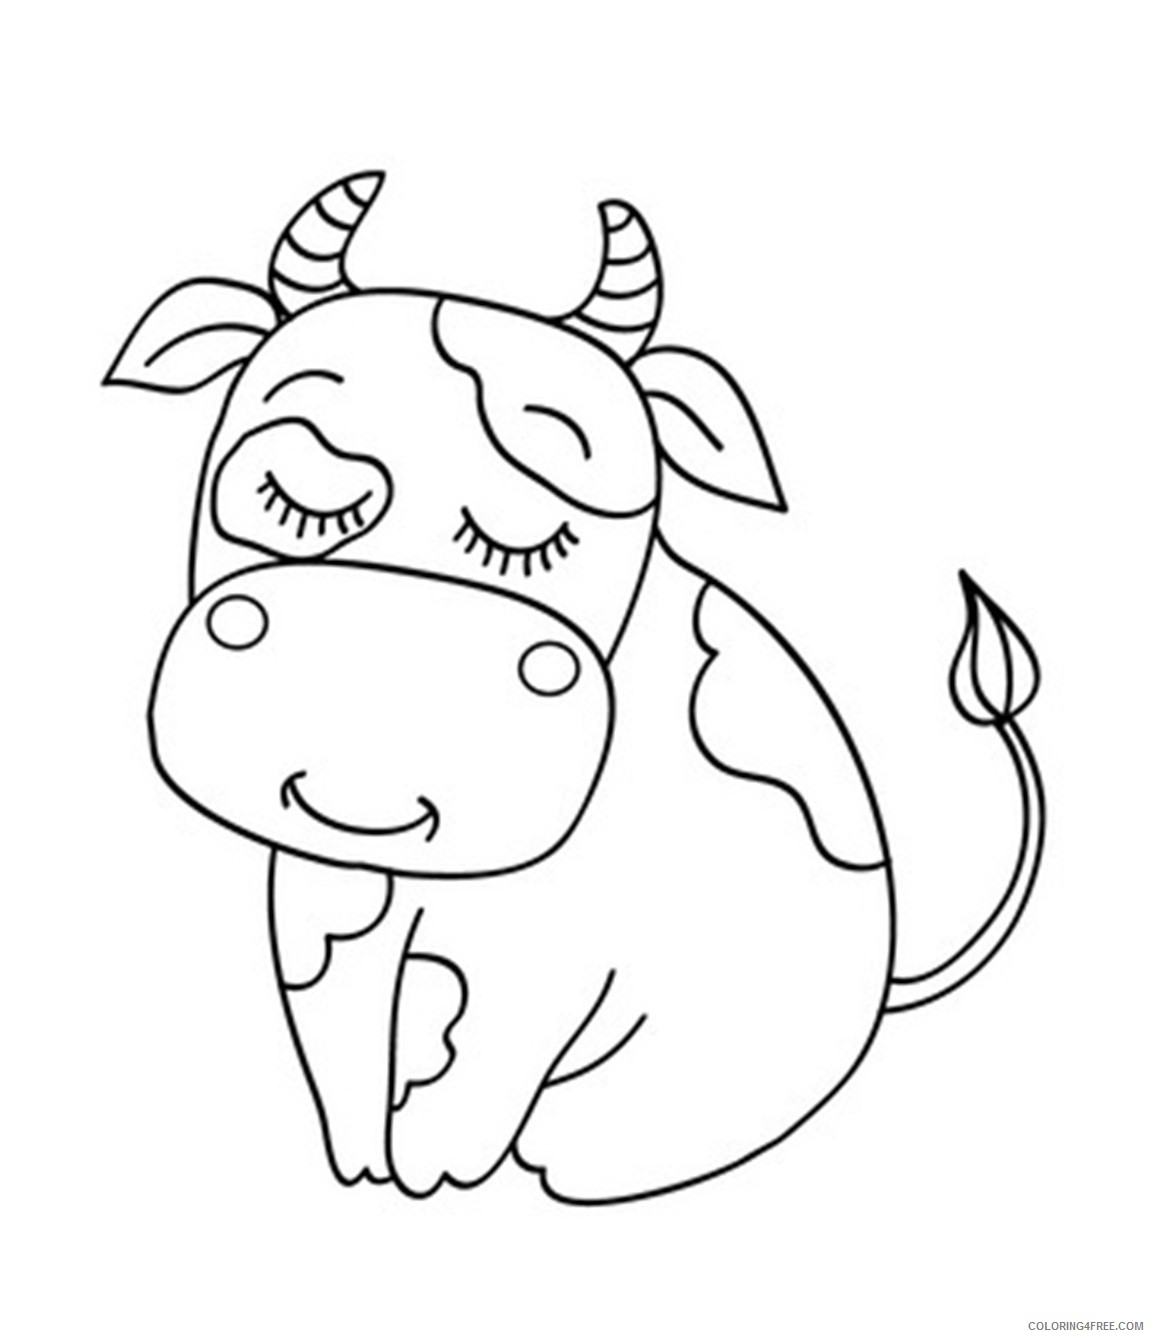 cute cow coloring pages to print Coloring4free